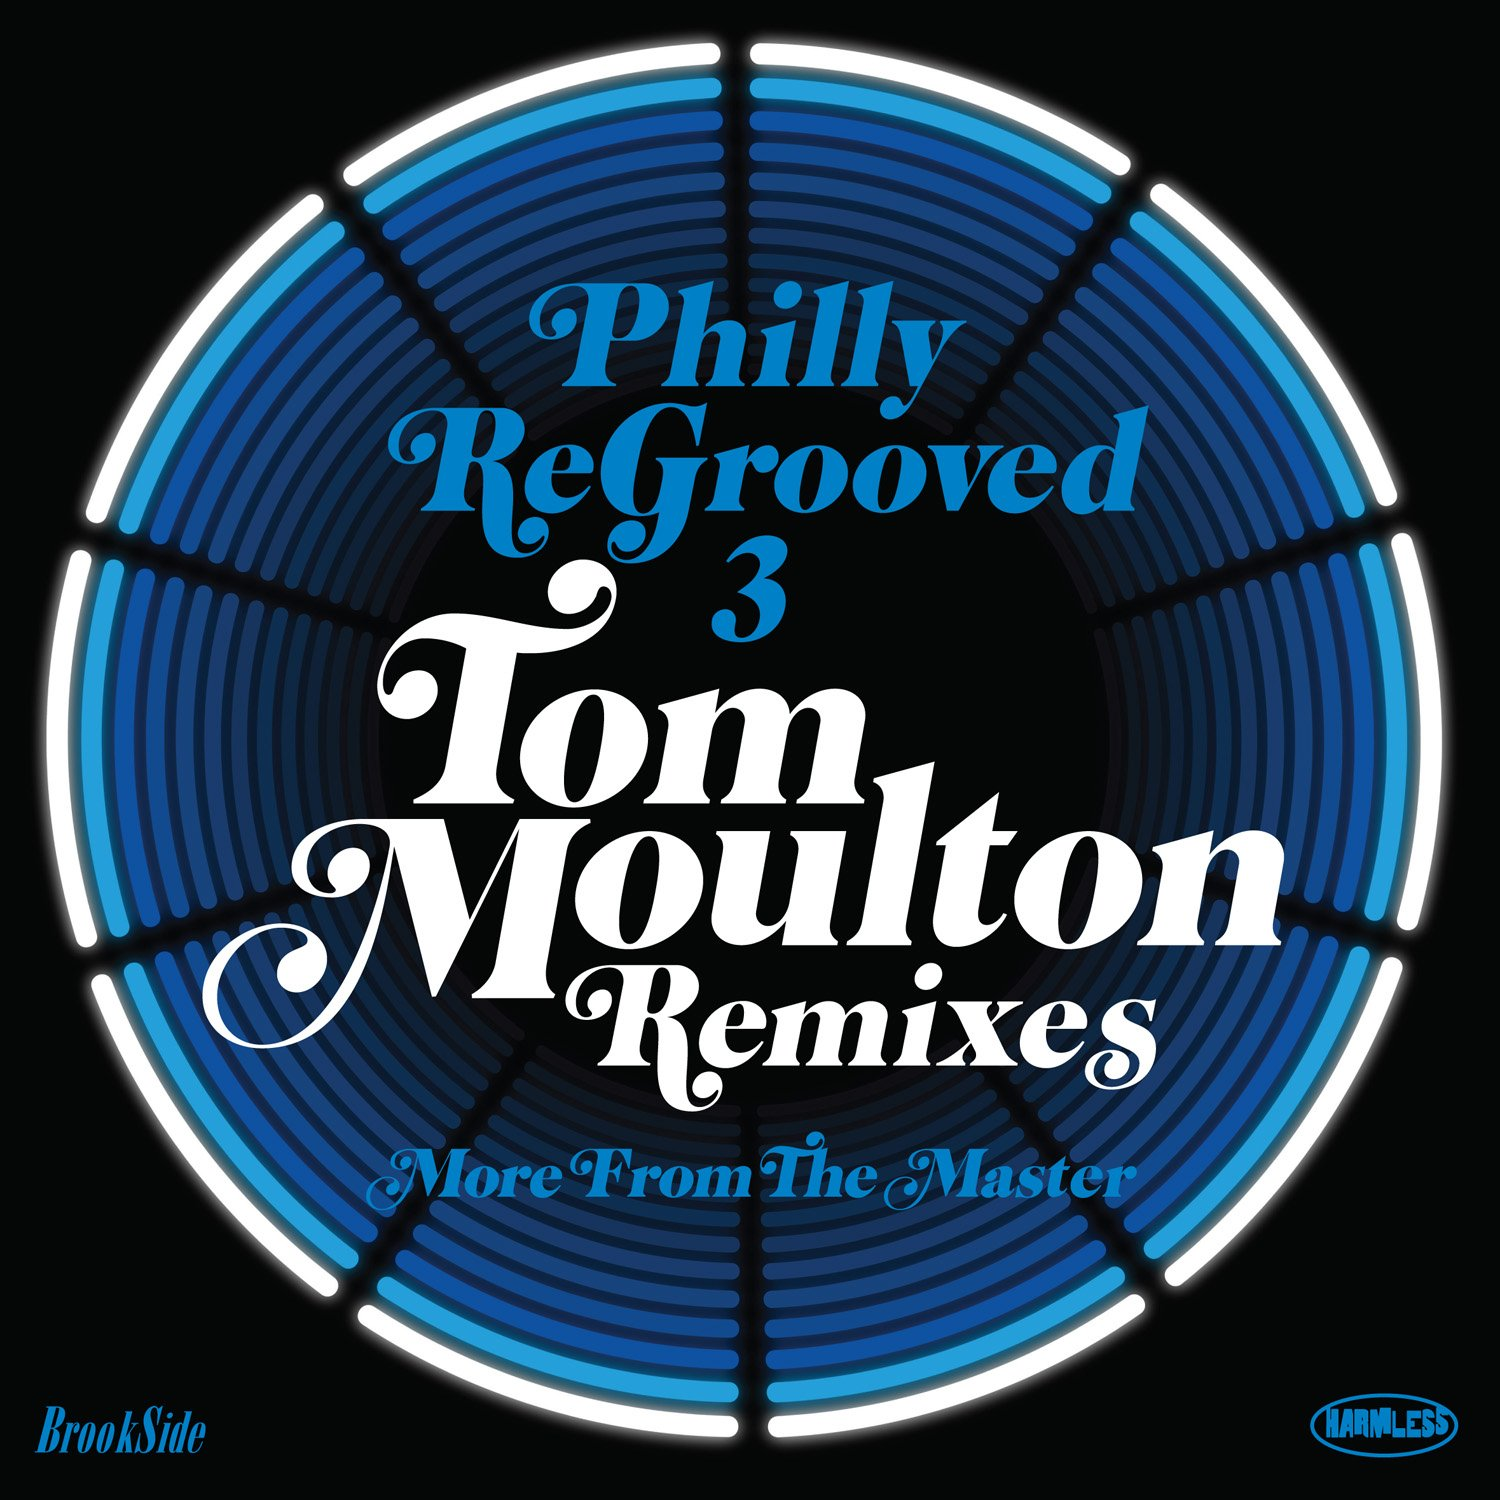 Philly Re-Grooved 3: More From The Master: The Tom Moulton Remixes - Various Artists by HARMLESS